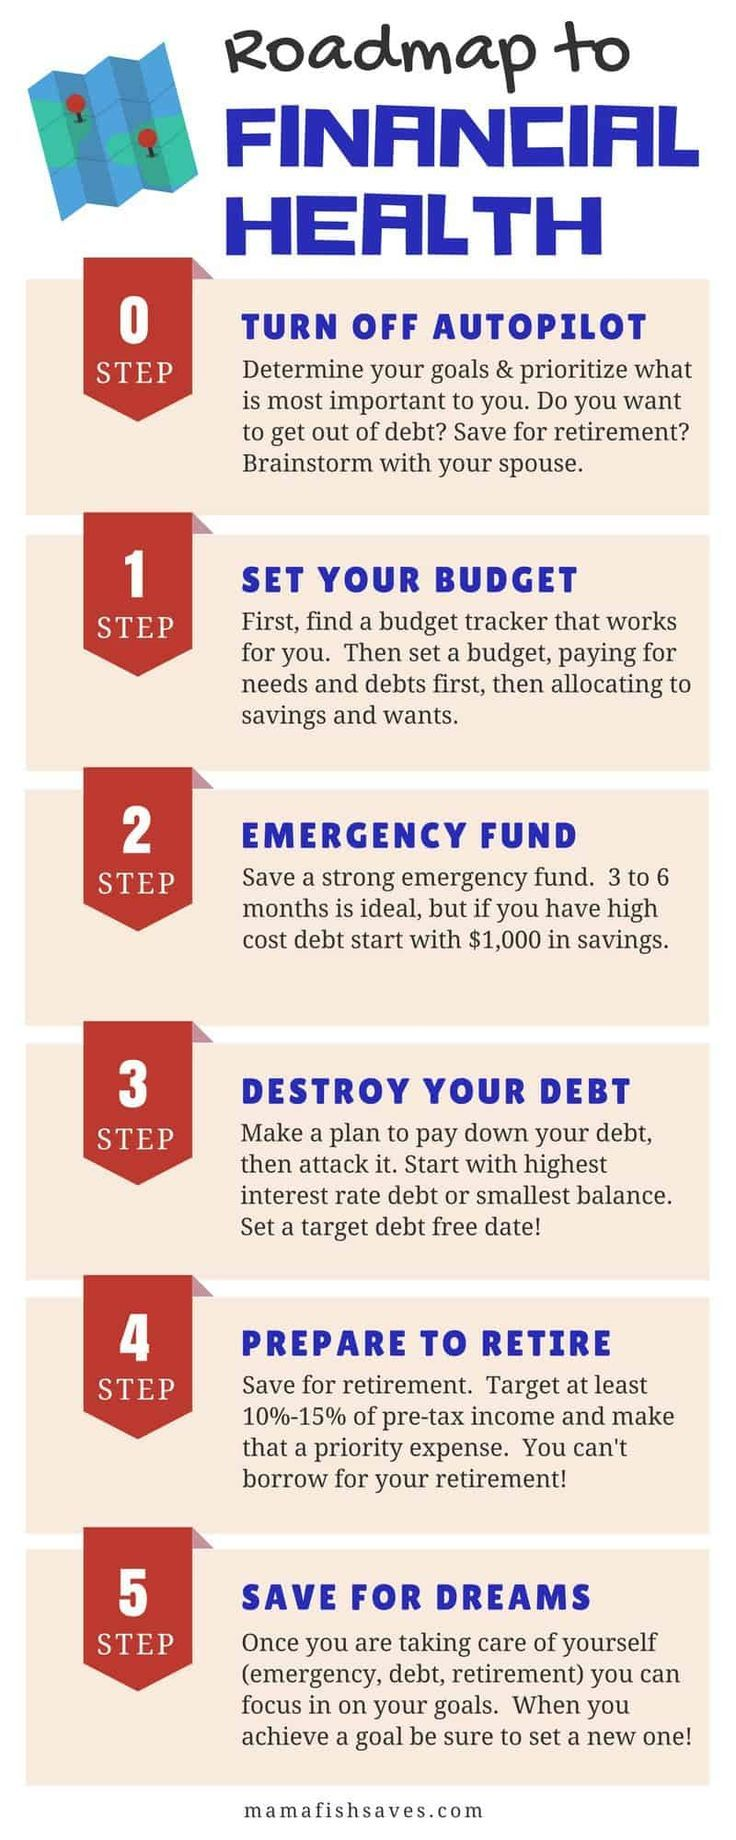 Follow The Roadmap To Financial Health Life Insurance Cost